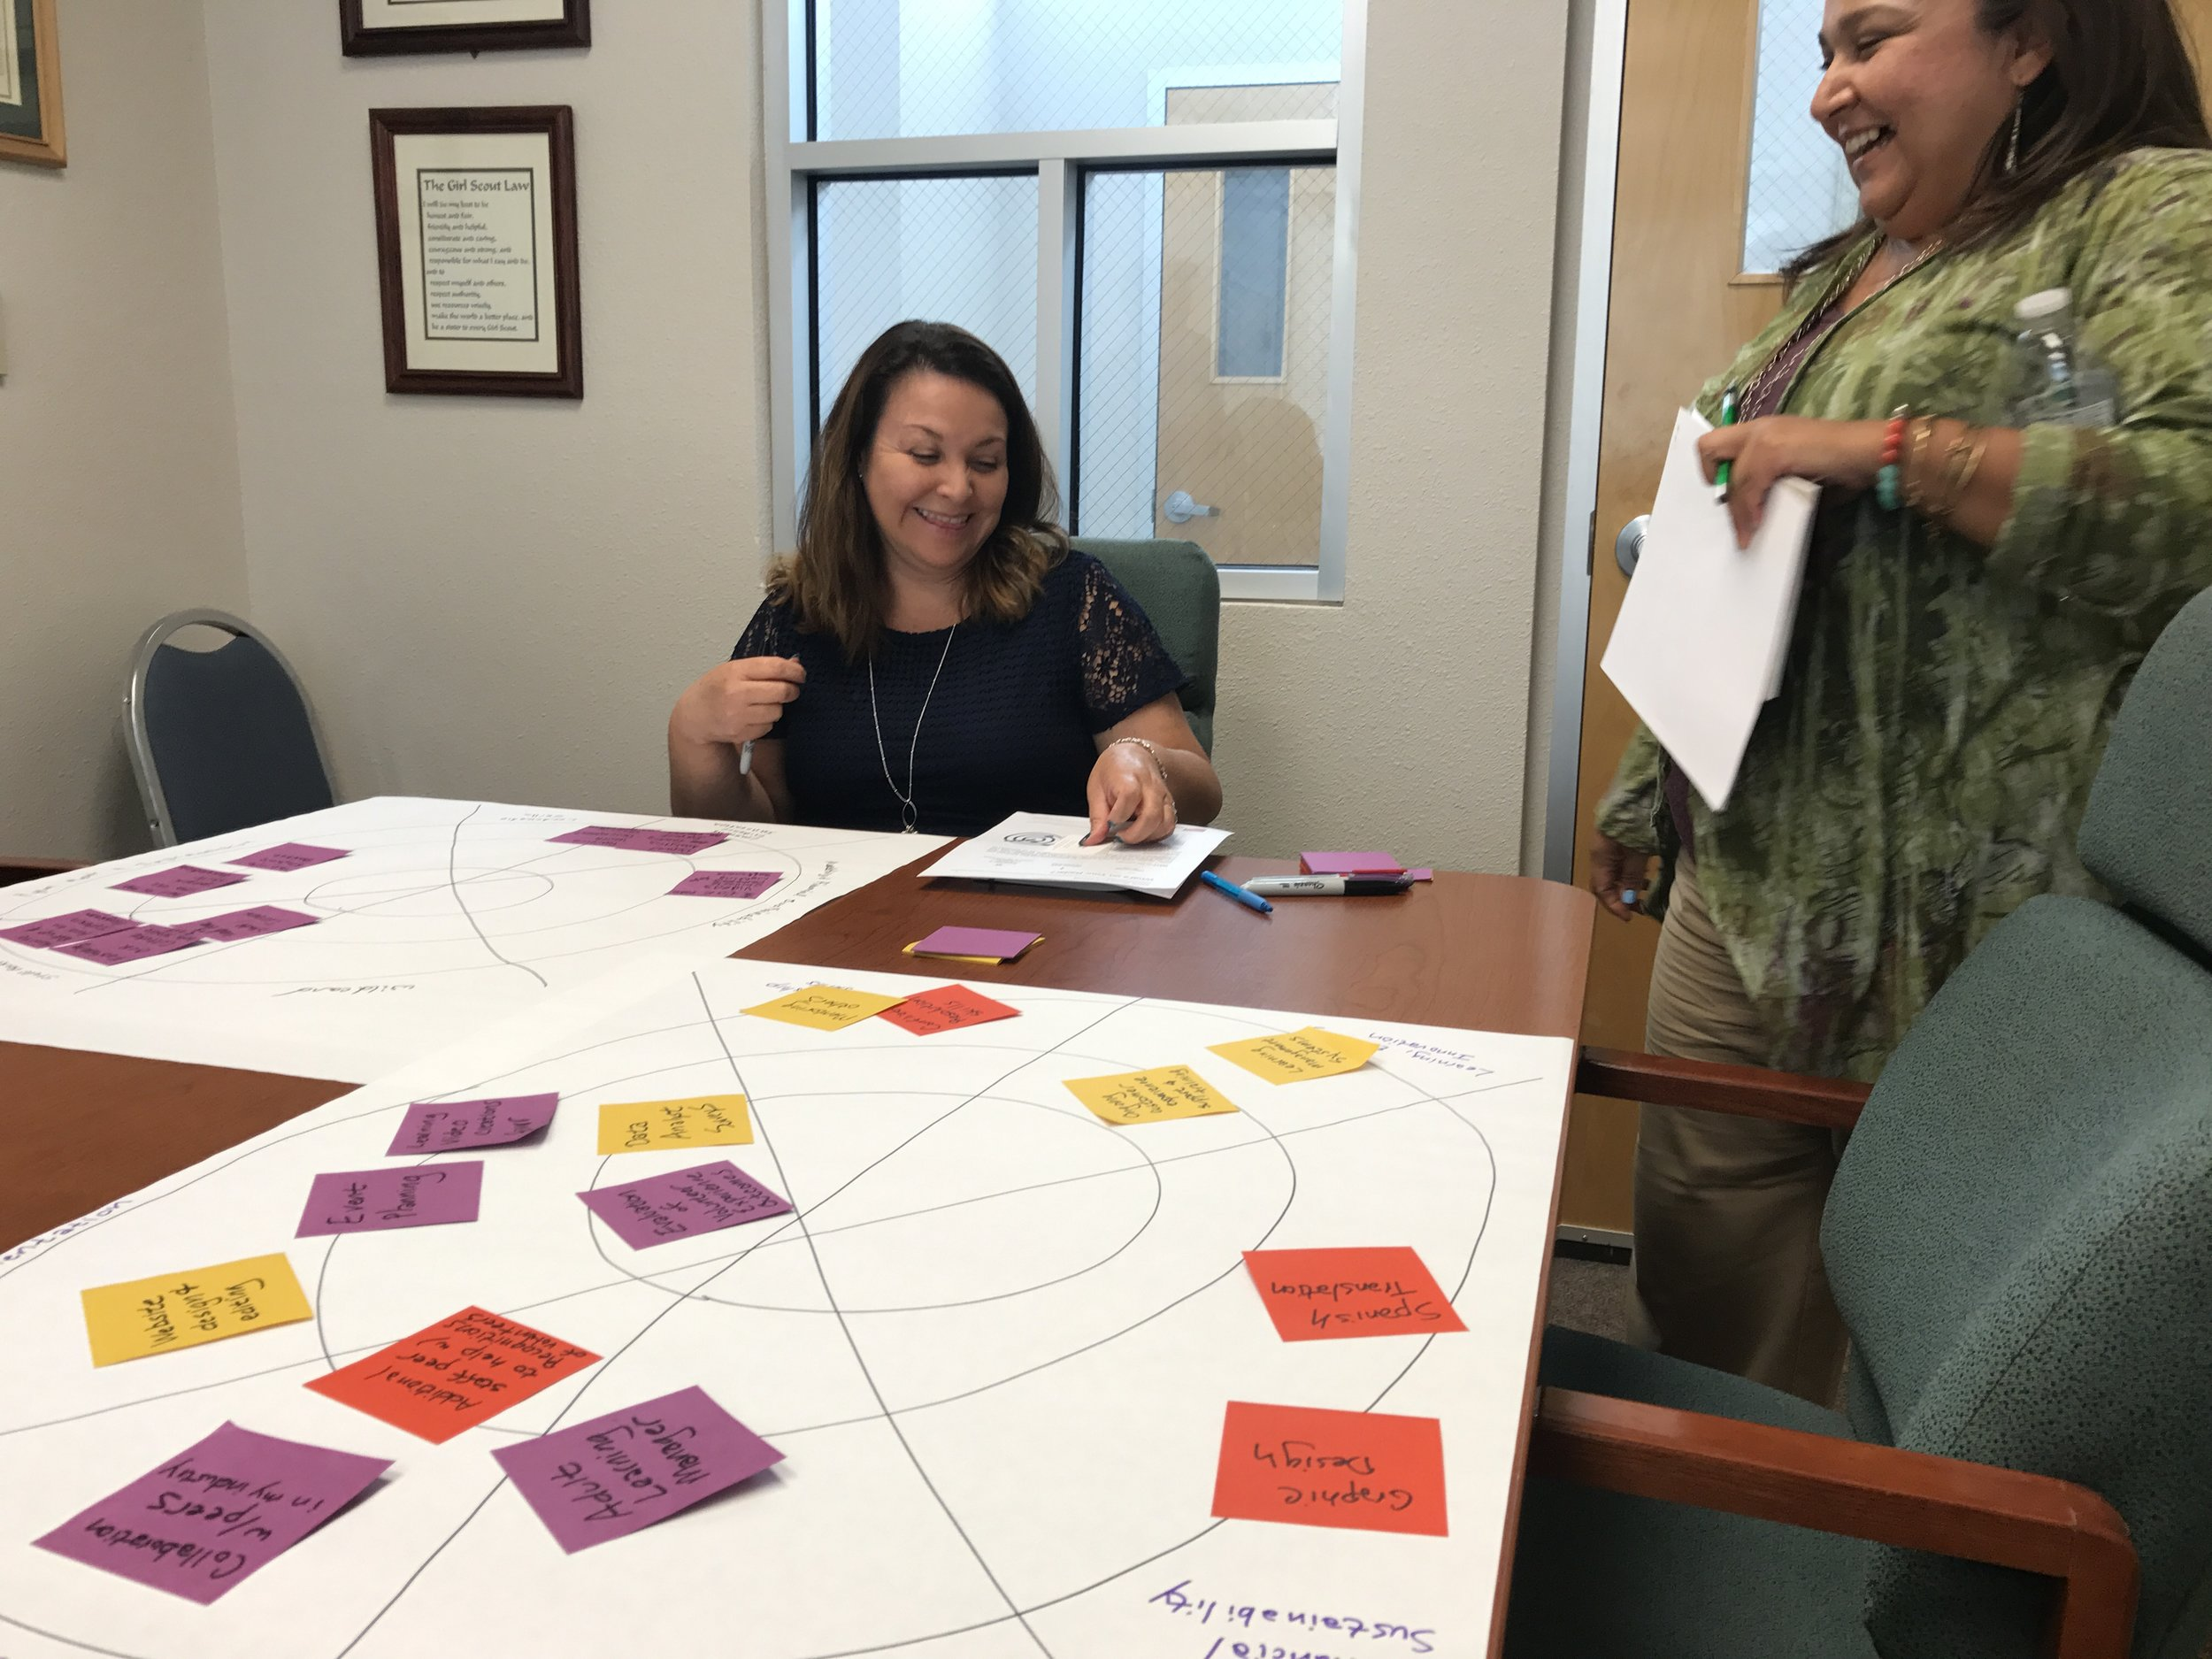 Prioritizing key knowledge, skills, capabilities that would improve their impact